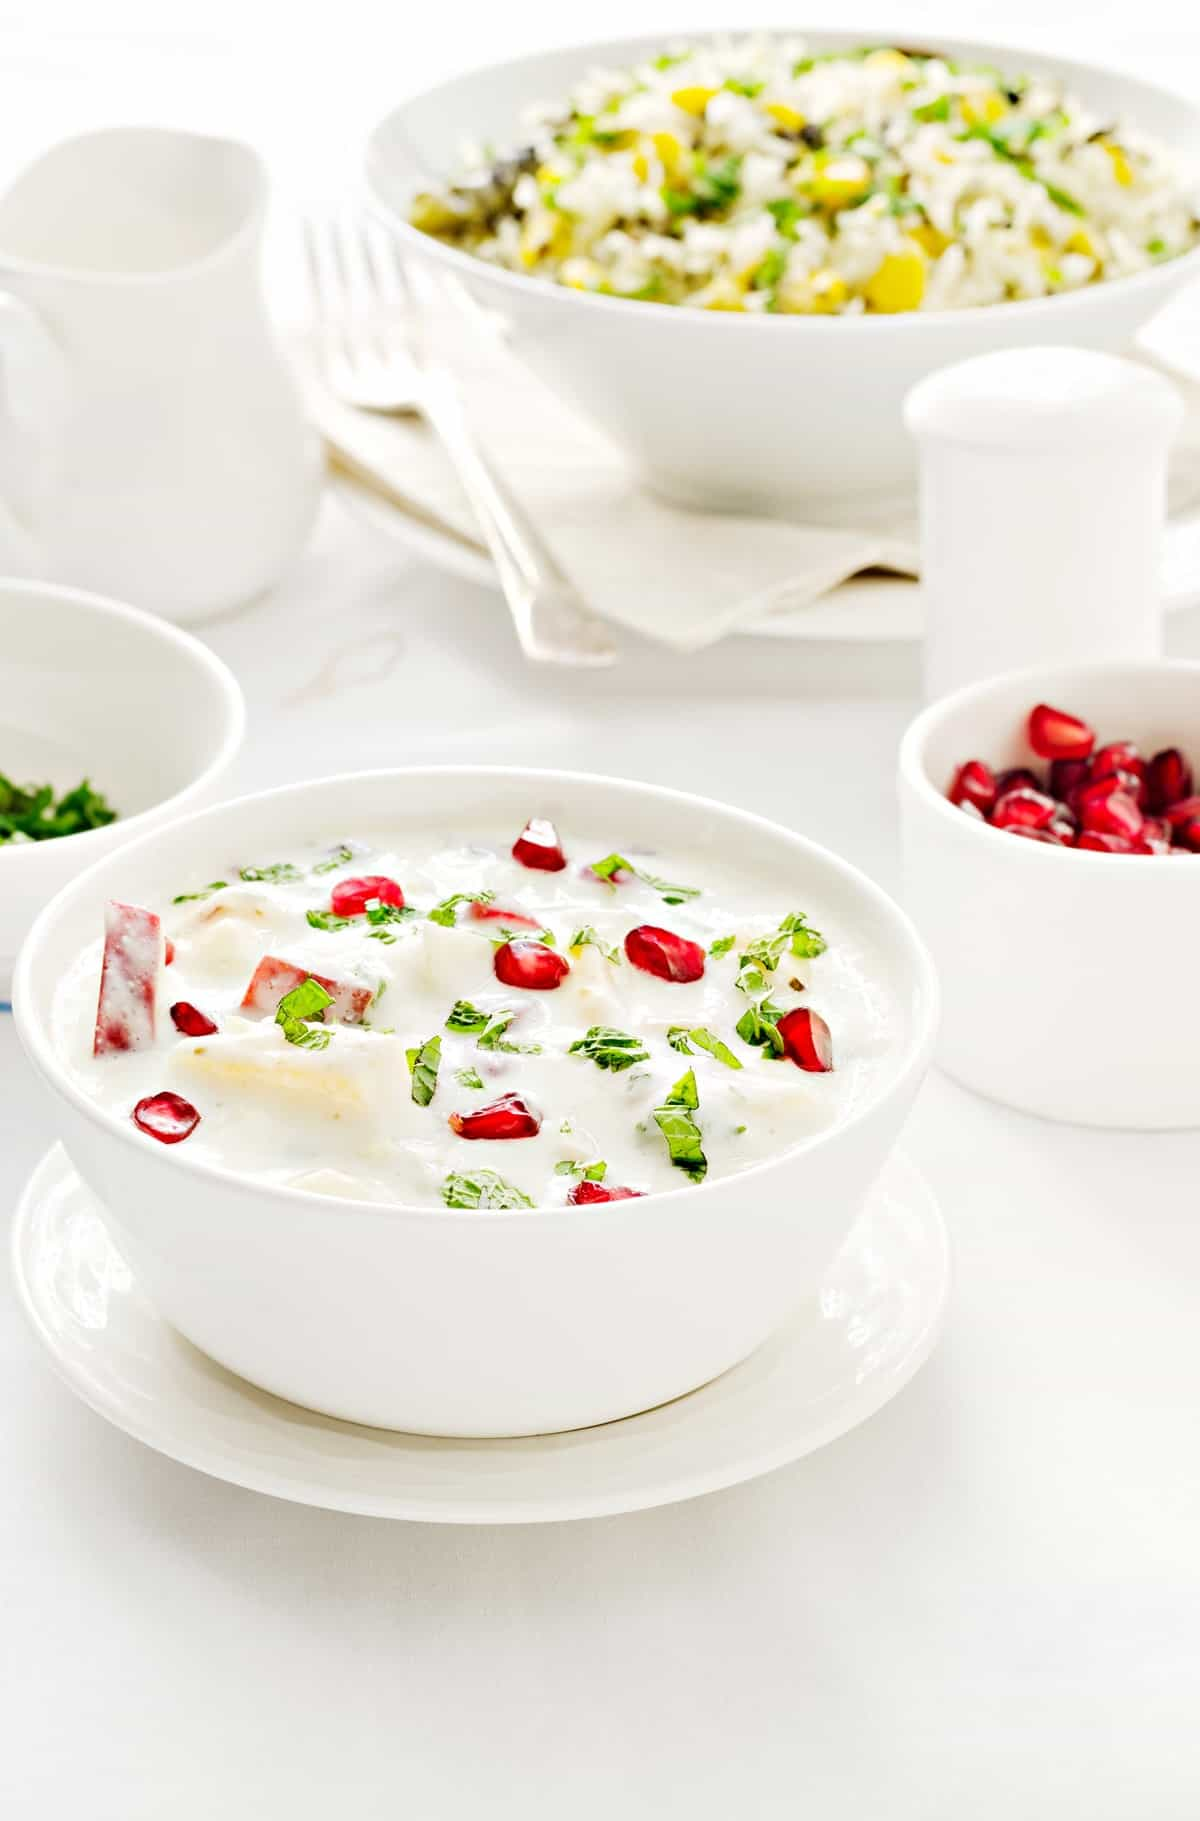 Mix Fruit Raita served in white bowl, rice pilaf and pomegranate in bowl at the back.